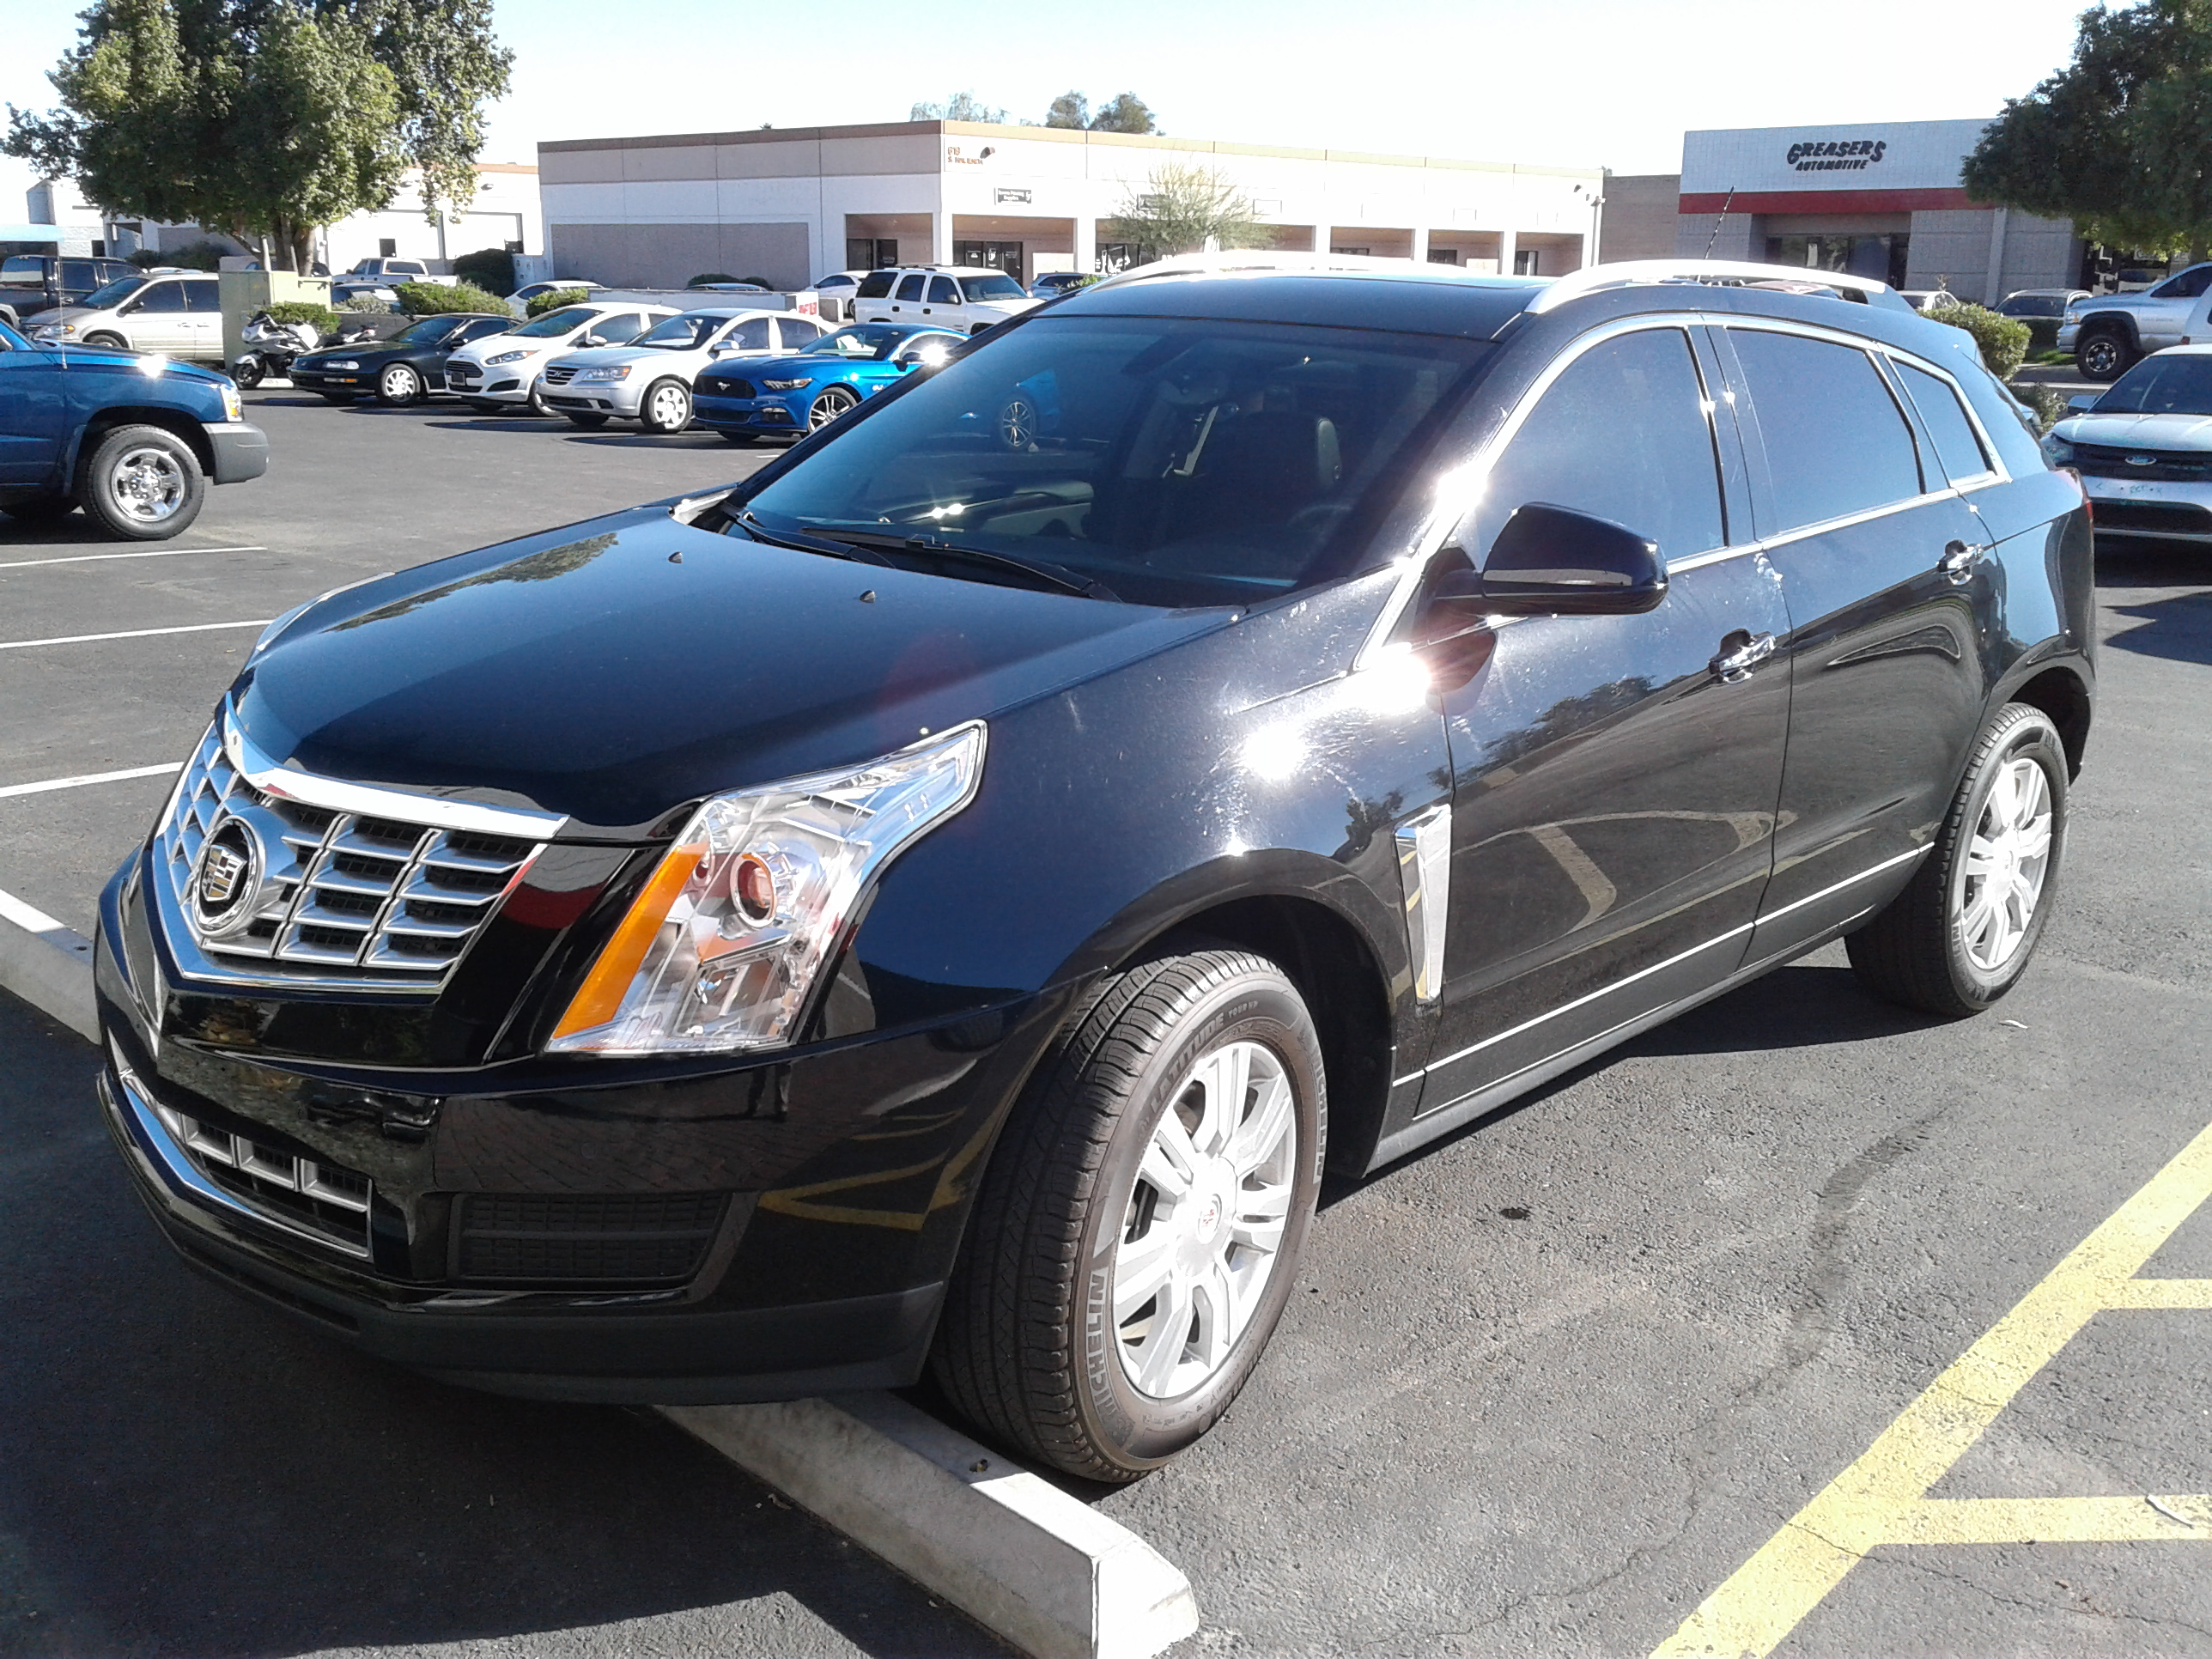 Cadillac Pre-Purchase Inspection 2